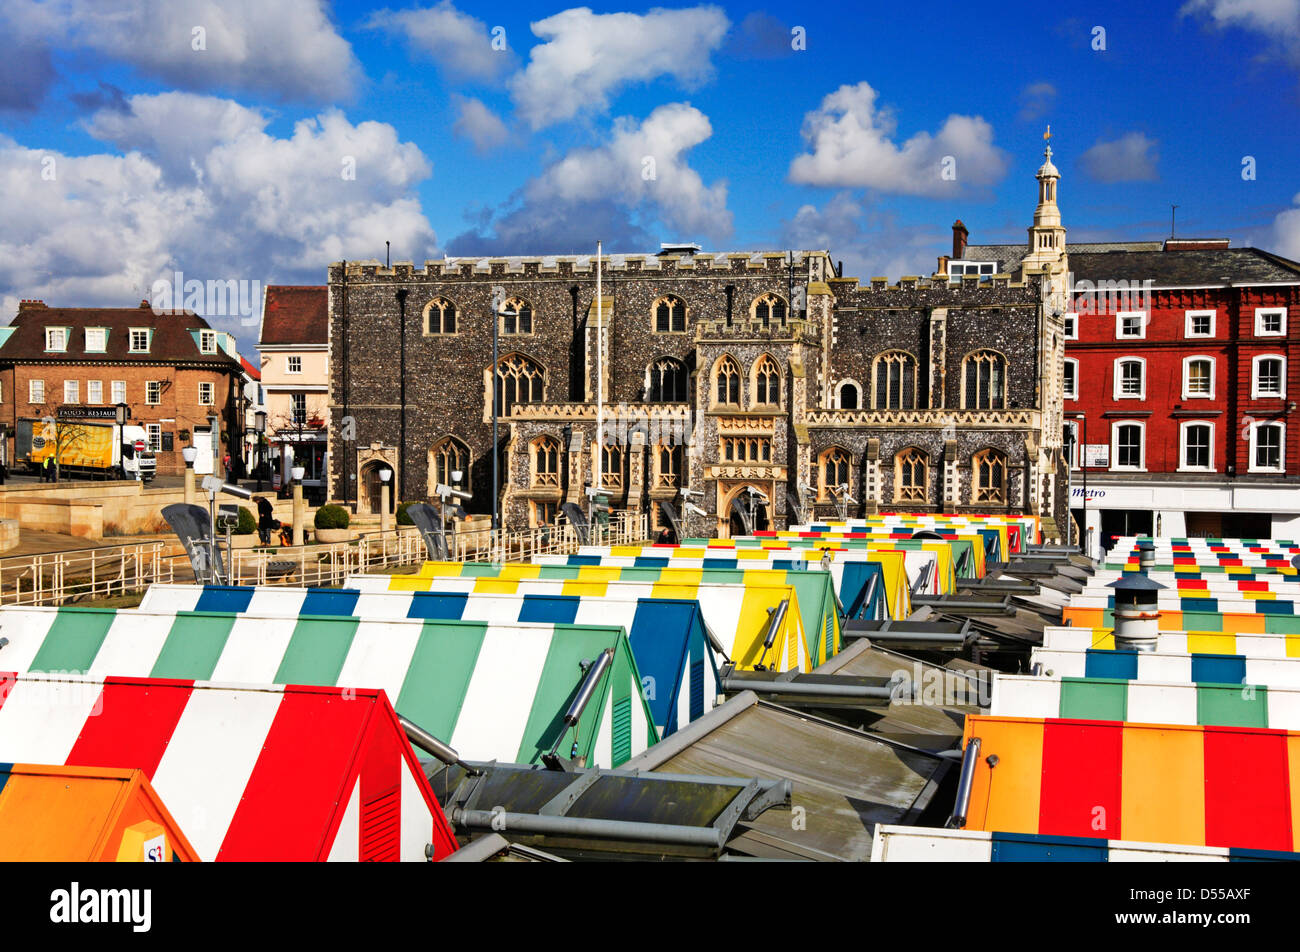 A view of the Guildhall over colourful market stall roofs in the centre of Norwich, Norfolk, England, United Kingdom. - Stock Image